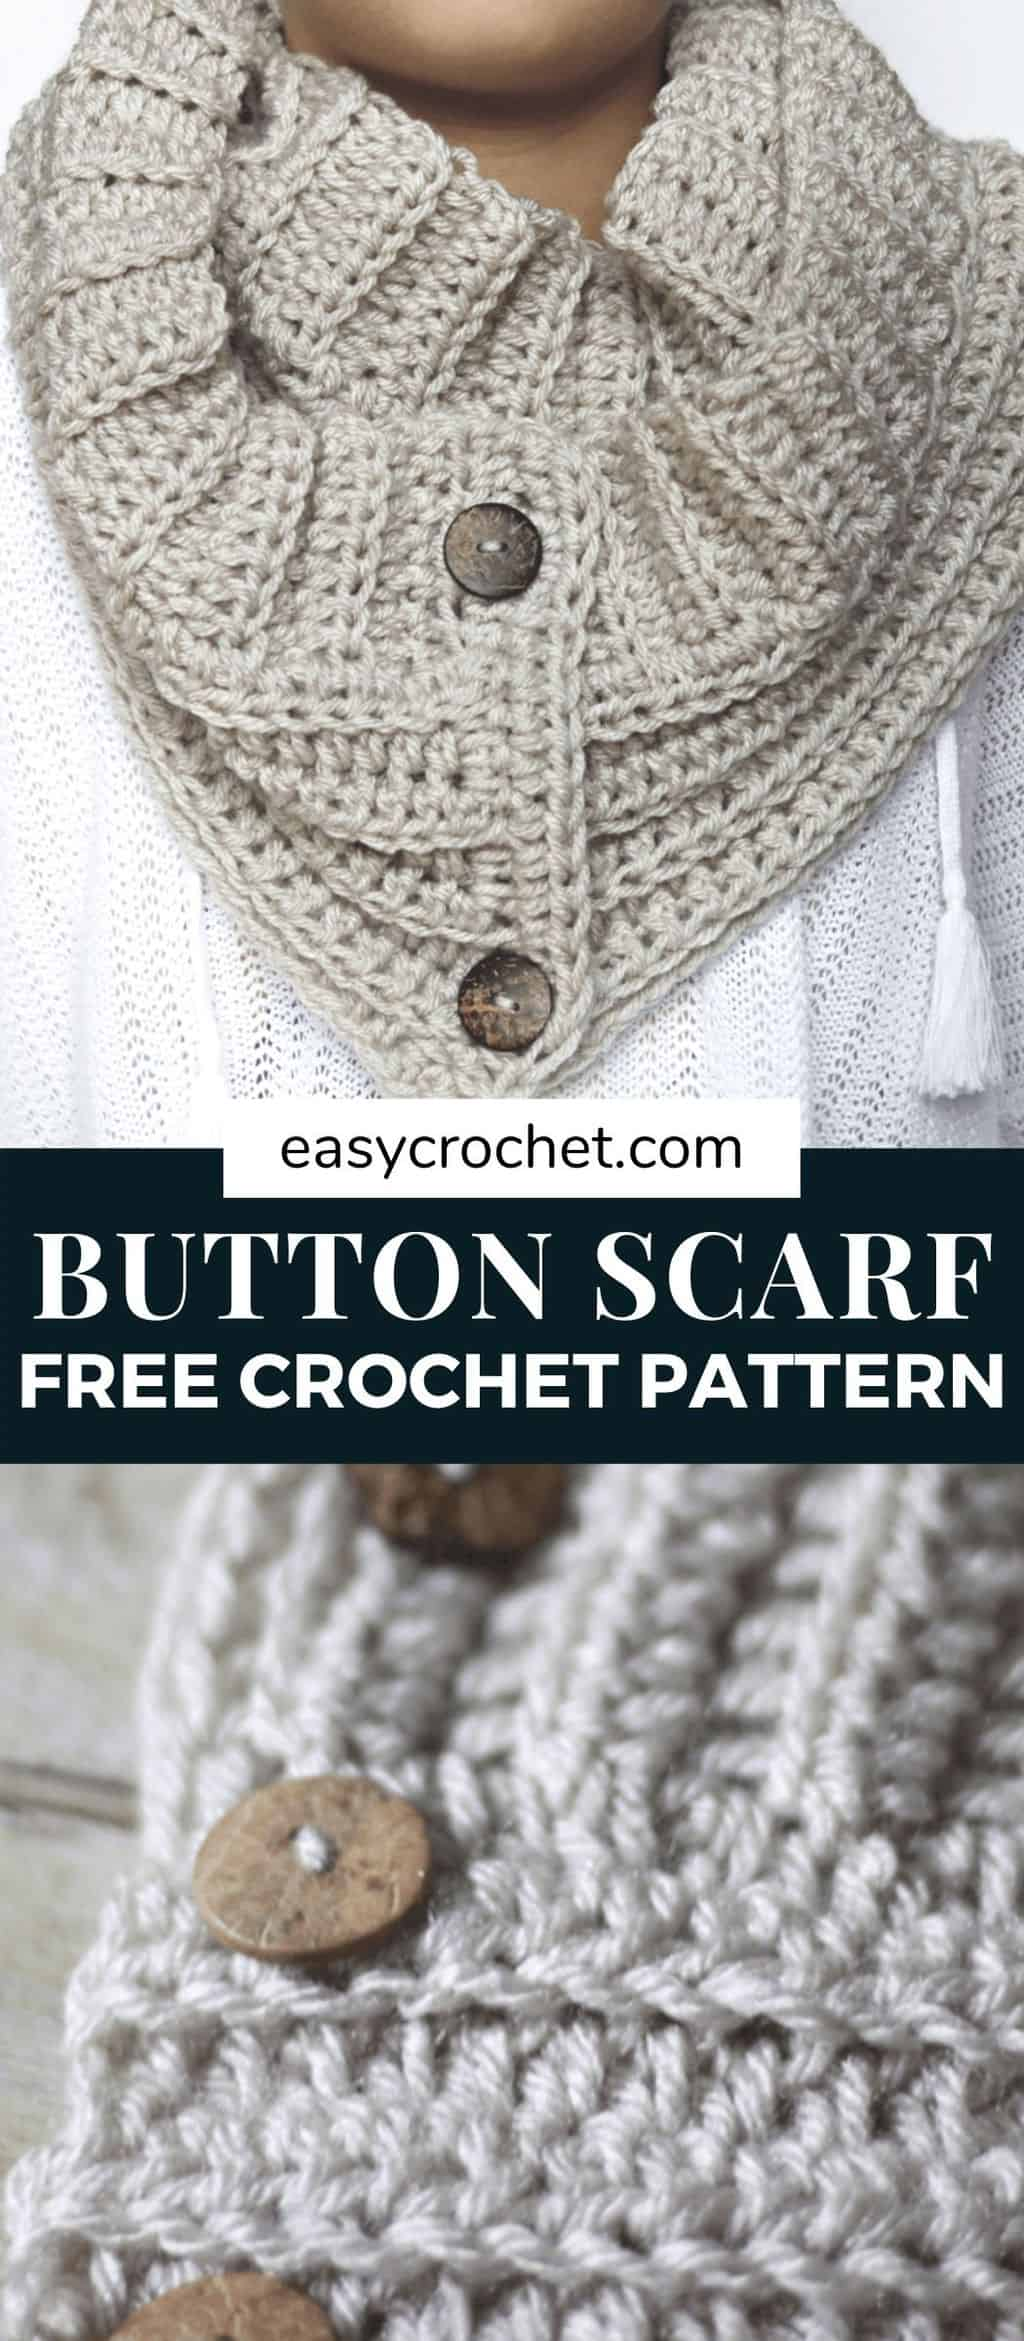 Free Crochet Scarf Pattern is easy to crochet and works up quickly. Get the free crochet pattern and start working on one today! via @easycrochetcom